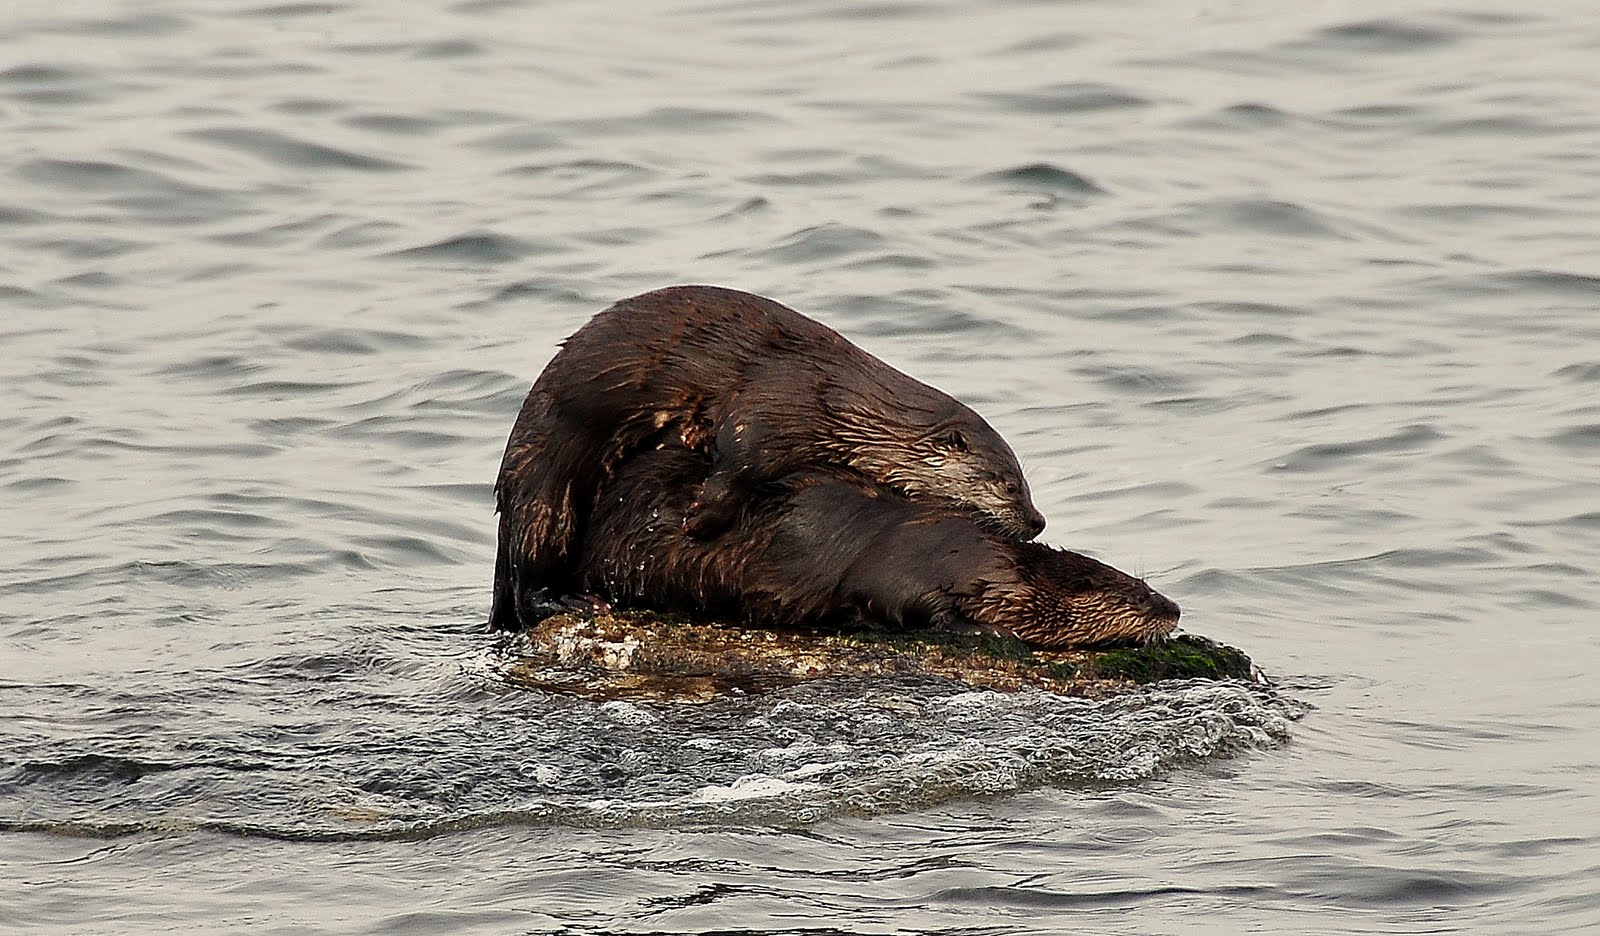 otters are legally hunted trapped in washington state while sea otters ... Otter Sounds